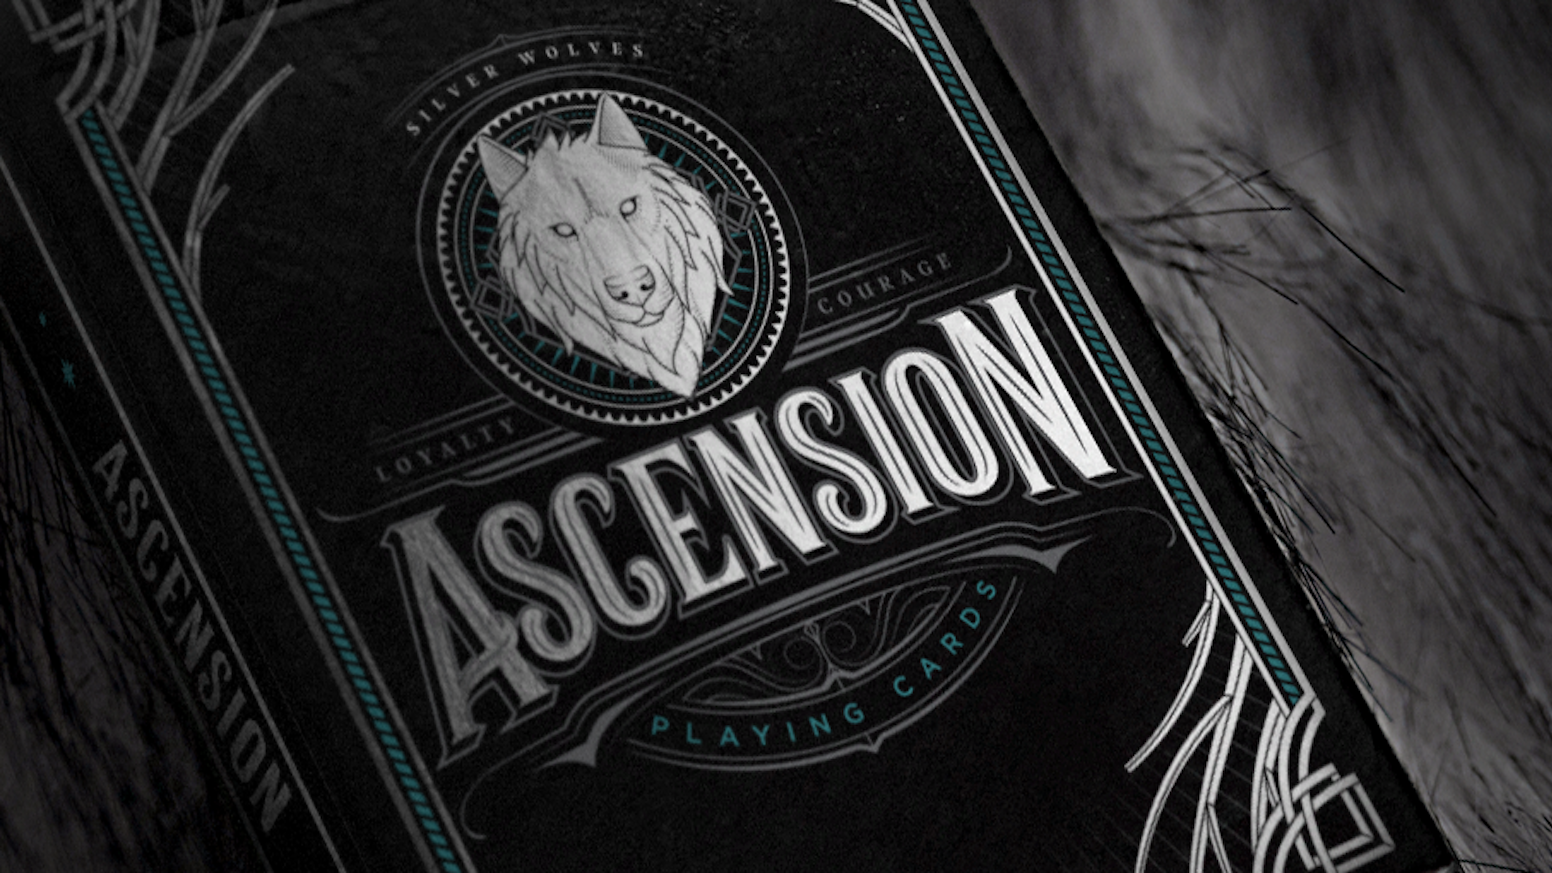 Ascension Playing cards epically designed and illustrated by Steve Minty